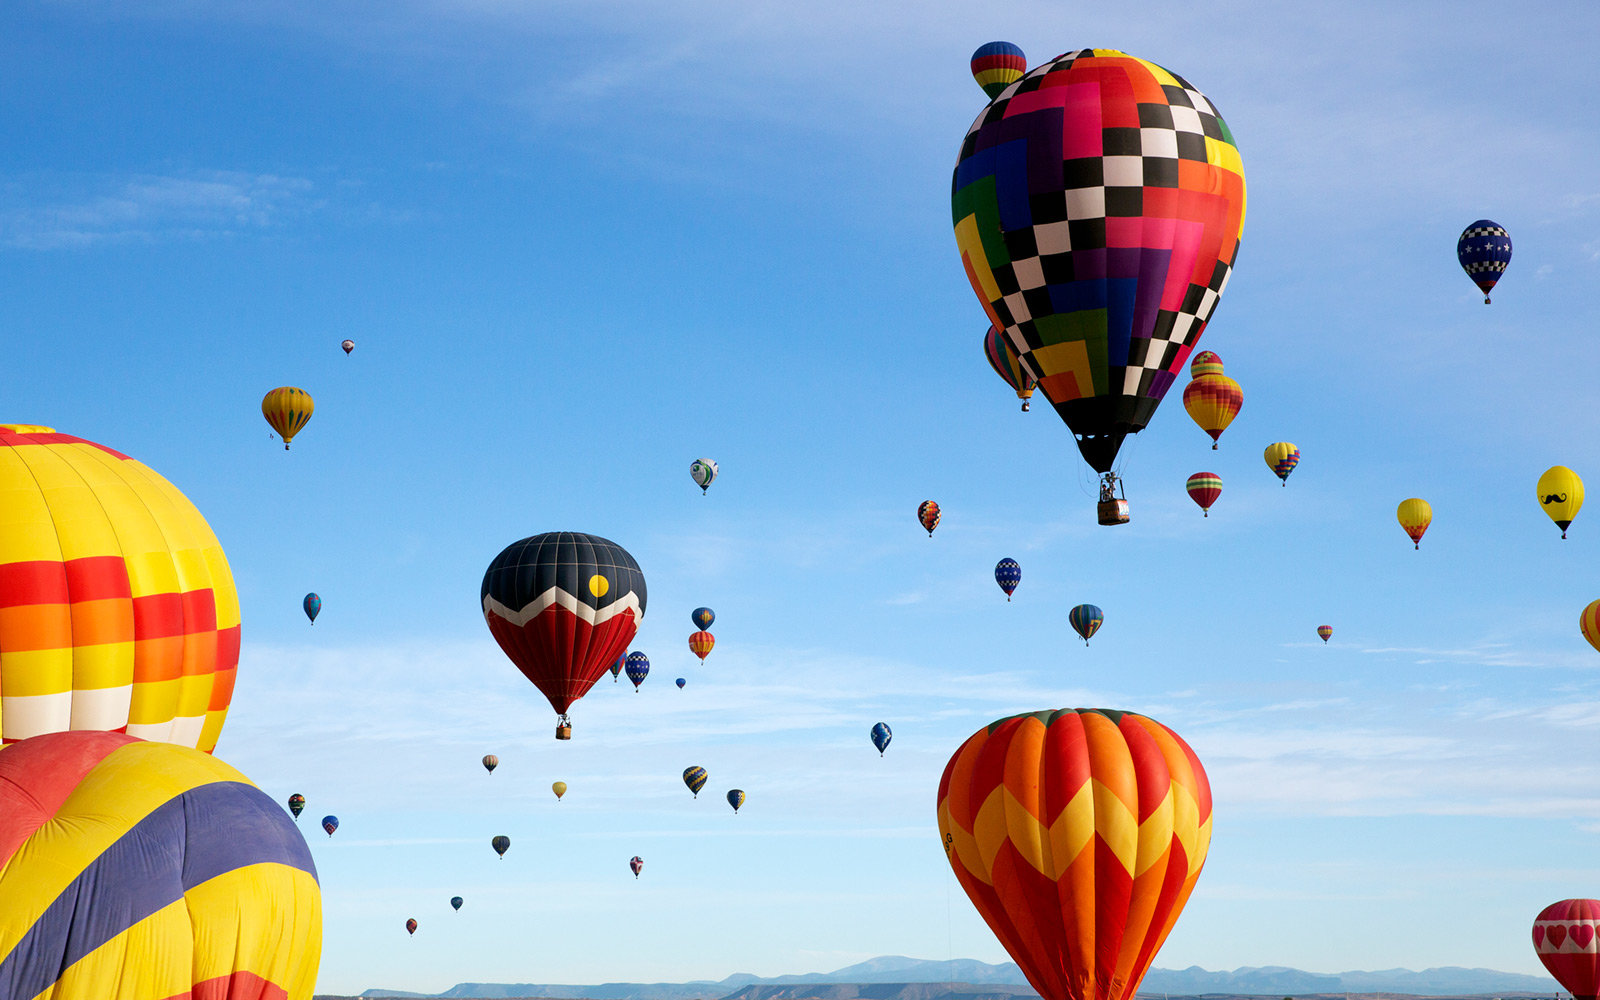 Mass Ascension at the Albuquerque International Balloon Fiesta